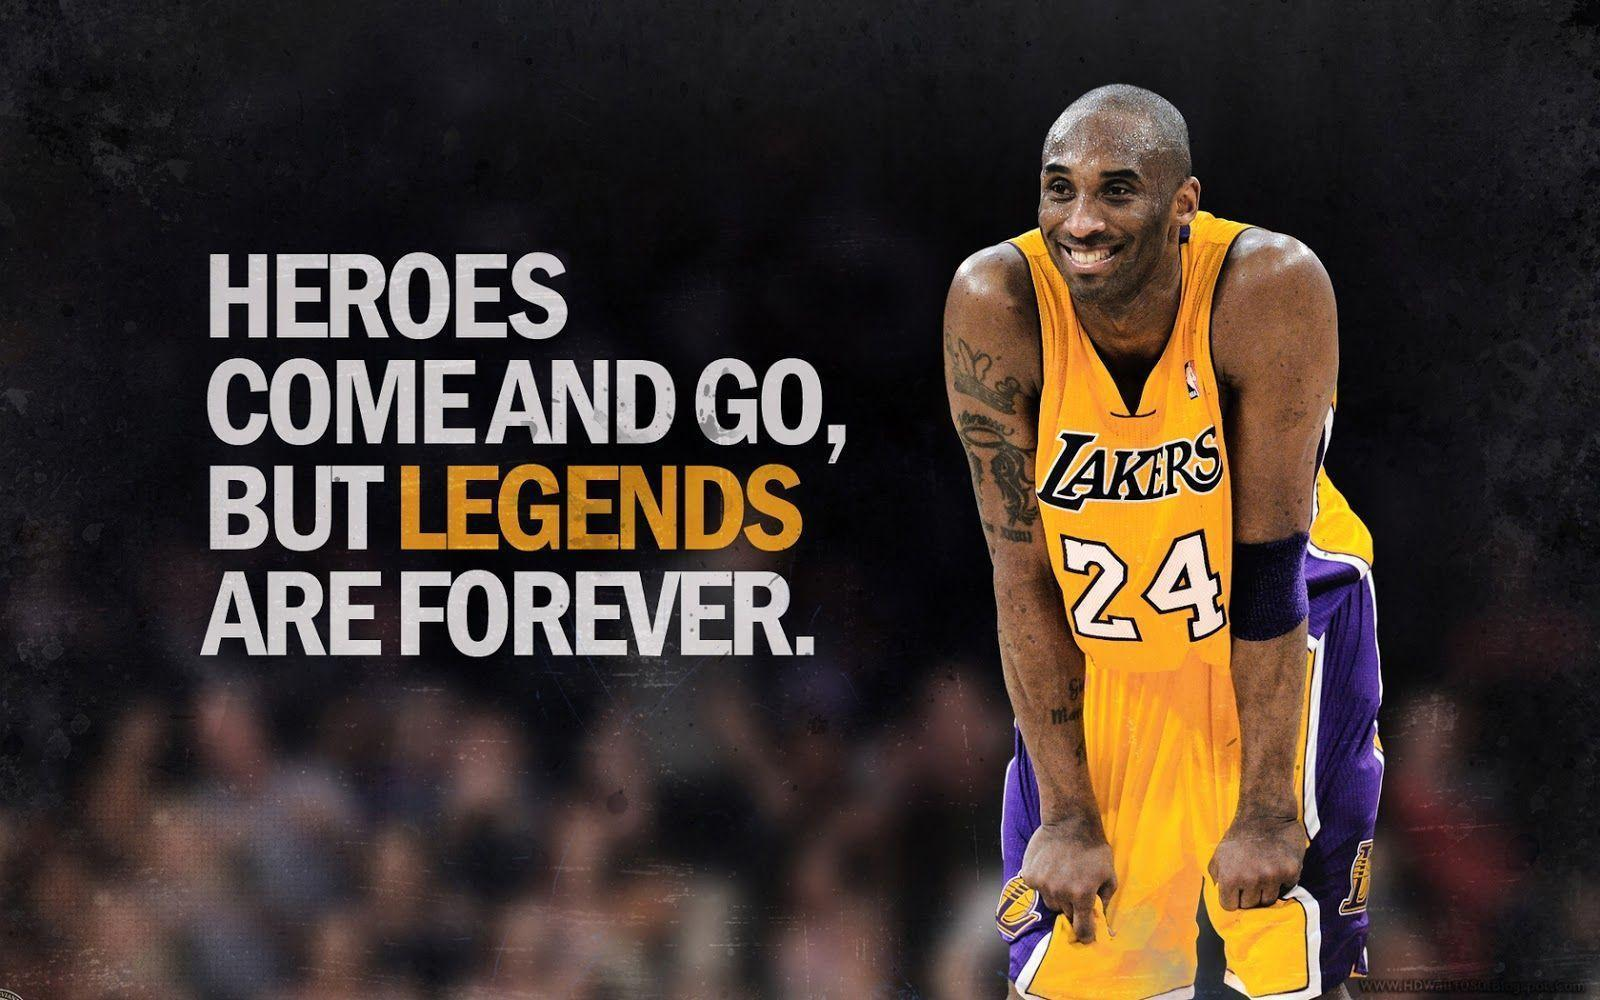 Kobe Bryant Wallpapers 34 293728 Image HD Wallpapers